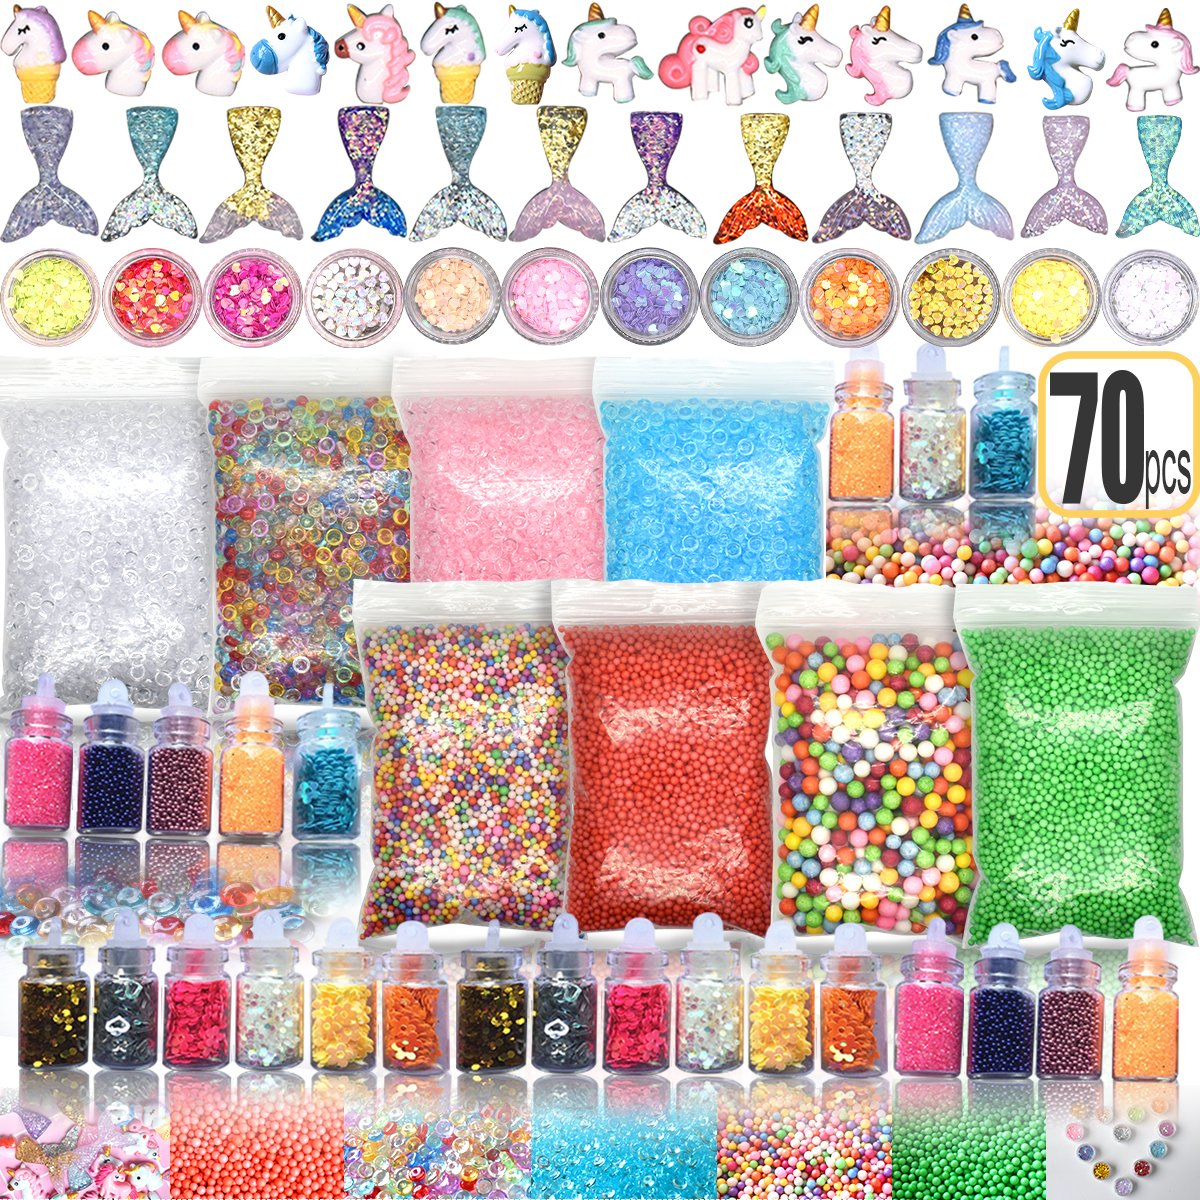 70PCS Slime Add Ins Slime Kit for Girls and Boys Floam Beads Fish Bowl Beads Mreaind Unicorn Slime Charms Glitter Jars Slime Supplies Kit Hulluter